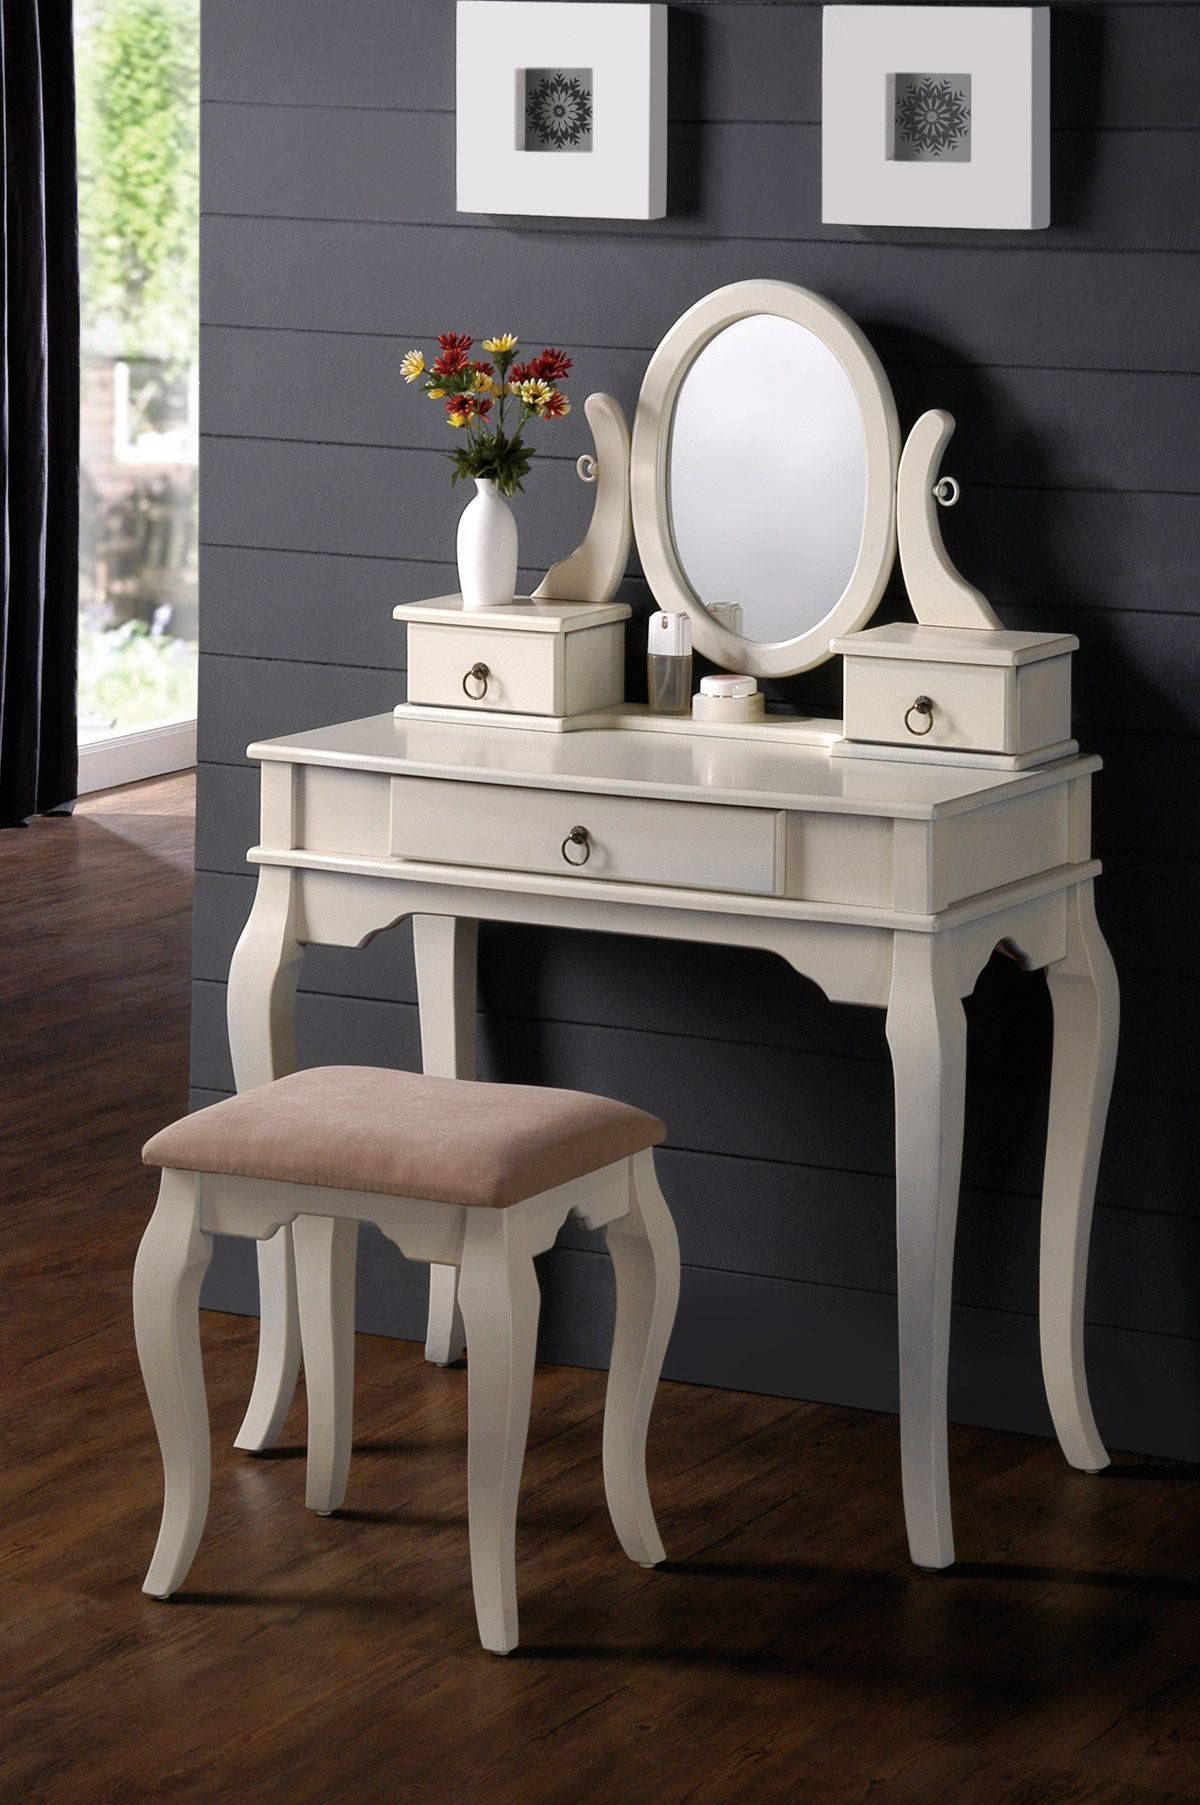 Small Vanities For Bedrooms Hollywood Vanity Mirror With Lights Kids Google Search Dress